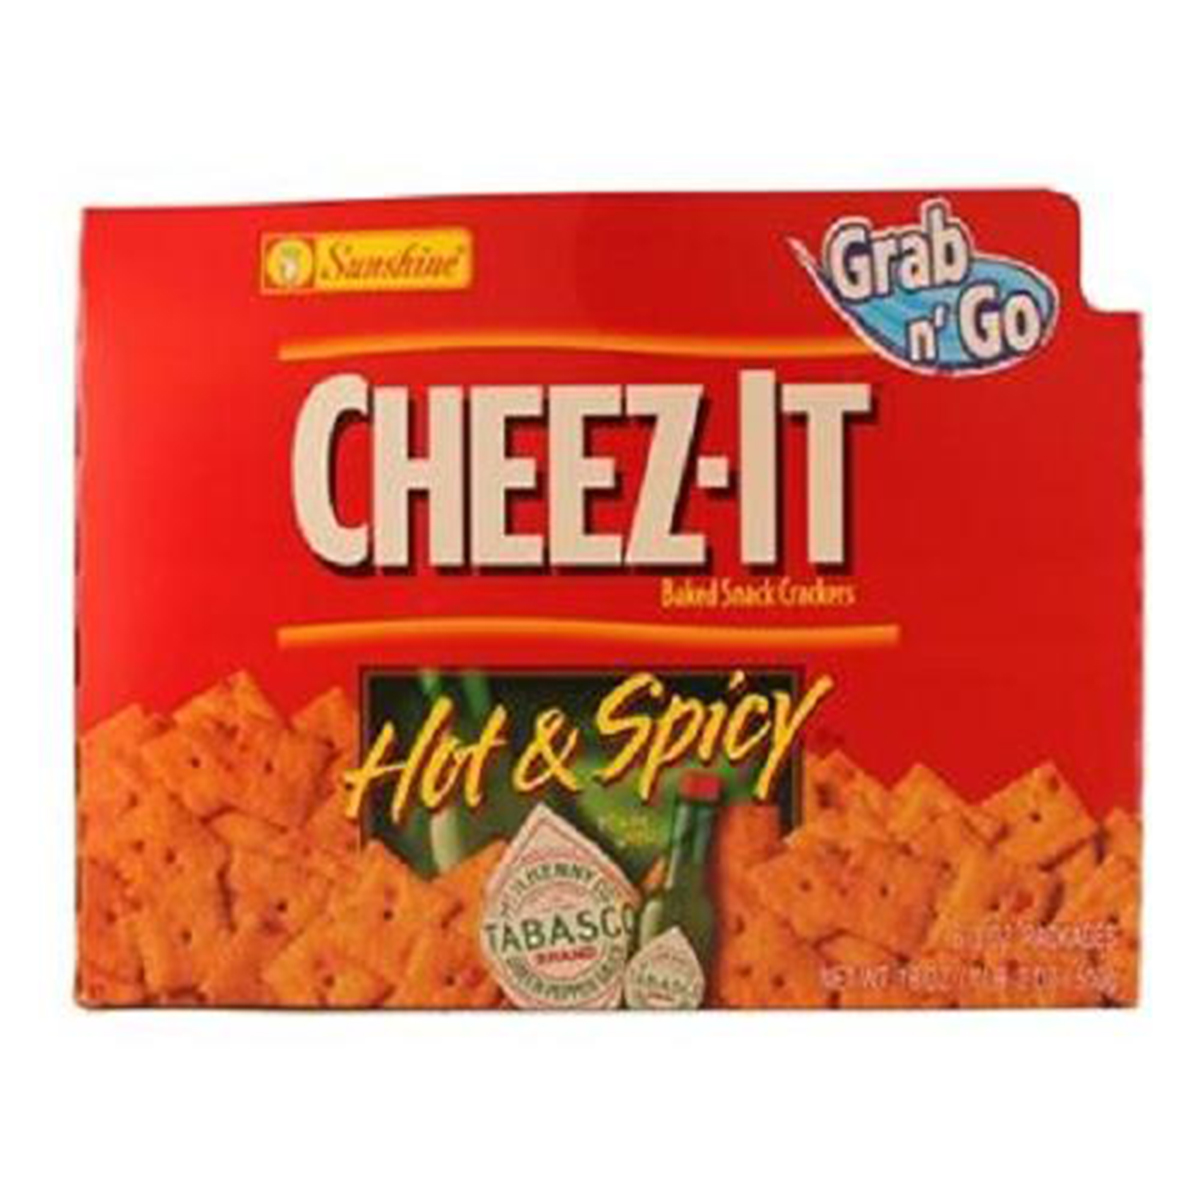 Product Of Cheez-It, Grab N Go Hot & Spicy Crackers, Count 6 (3 oz) - Cookie & Cracker / Grab Varieties & Flavors